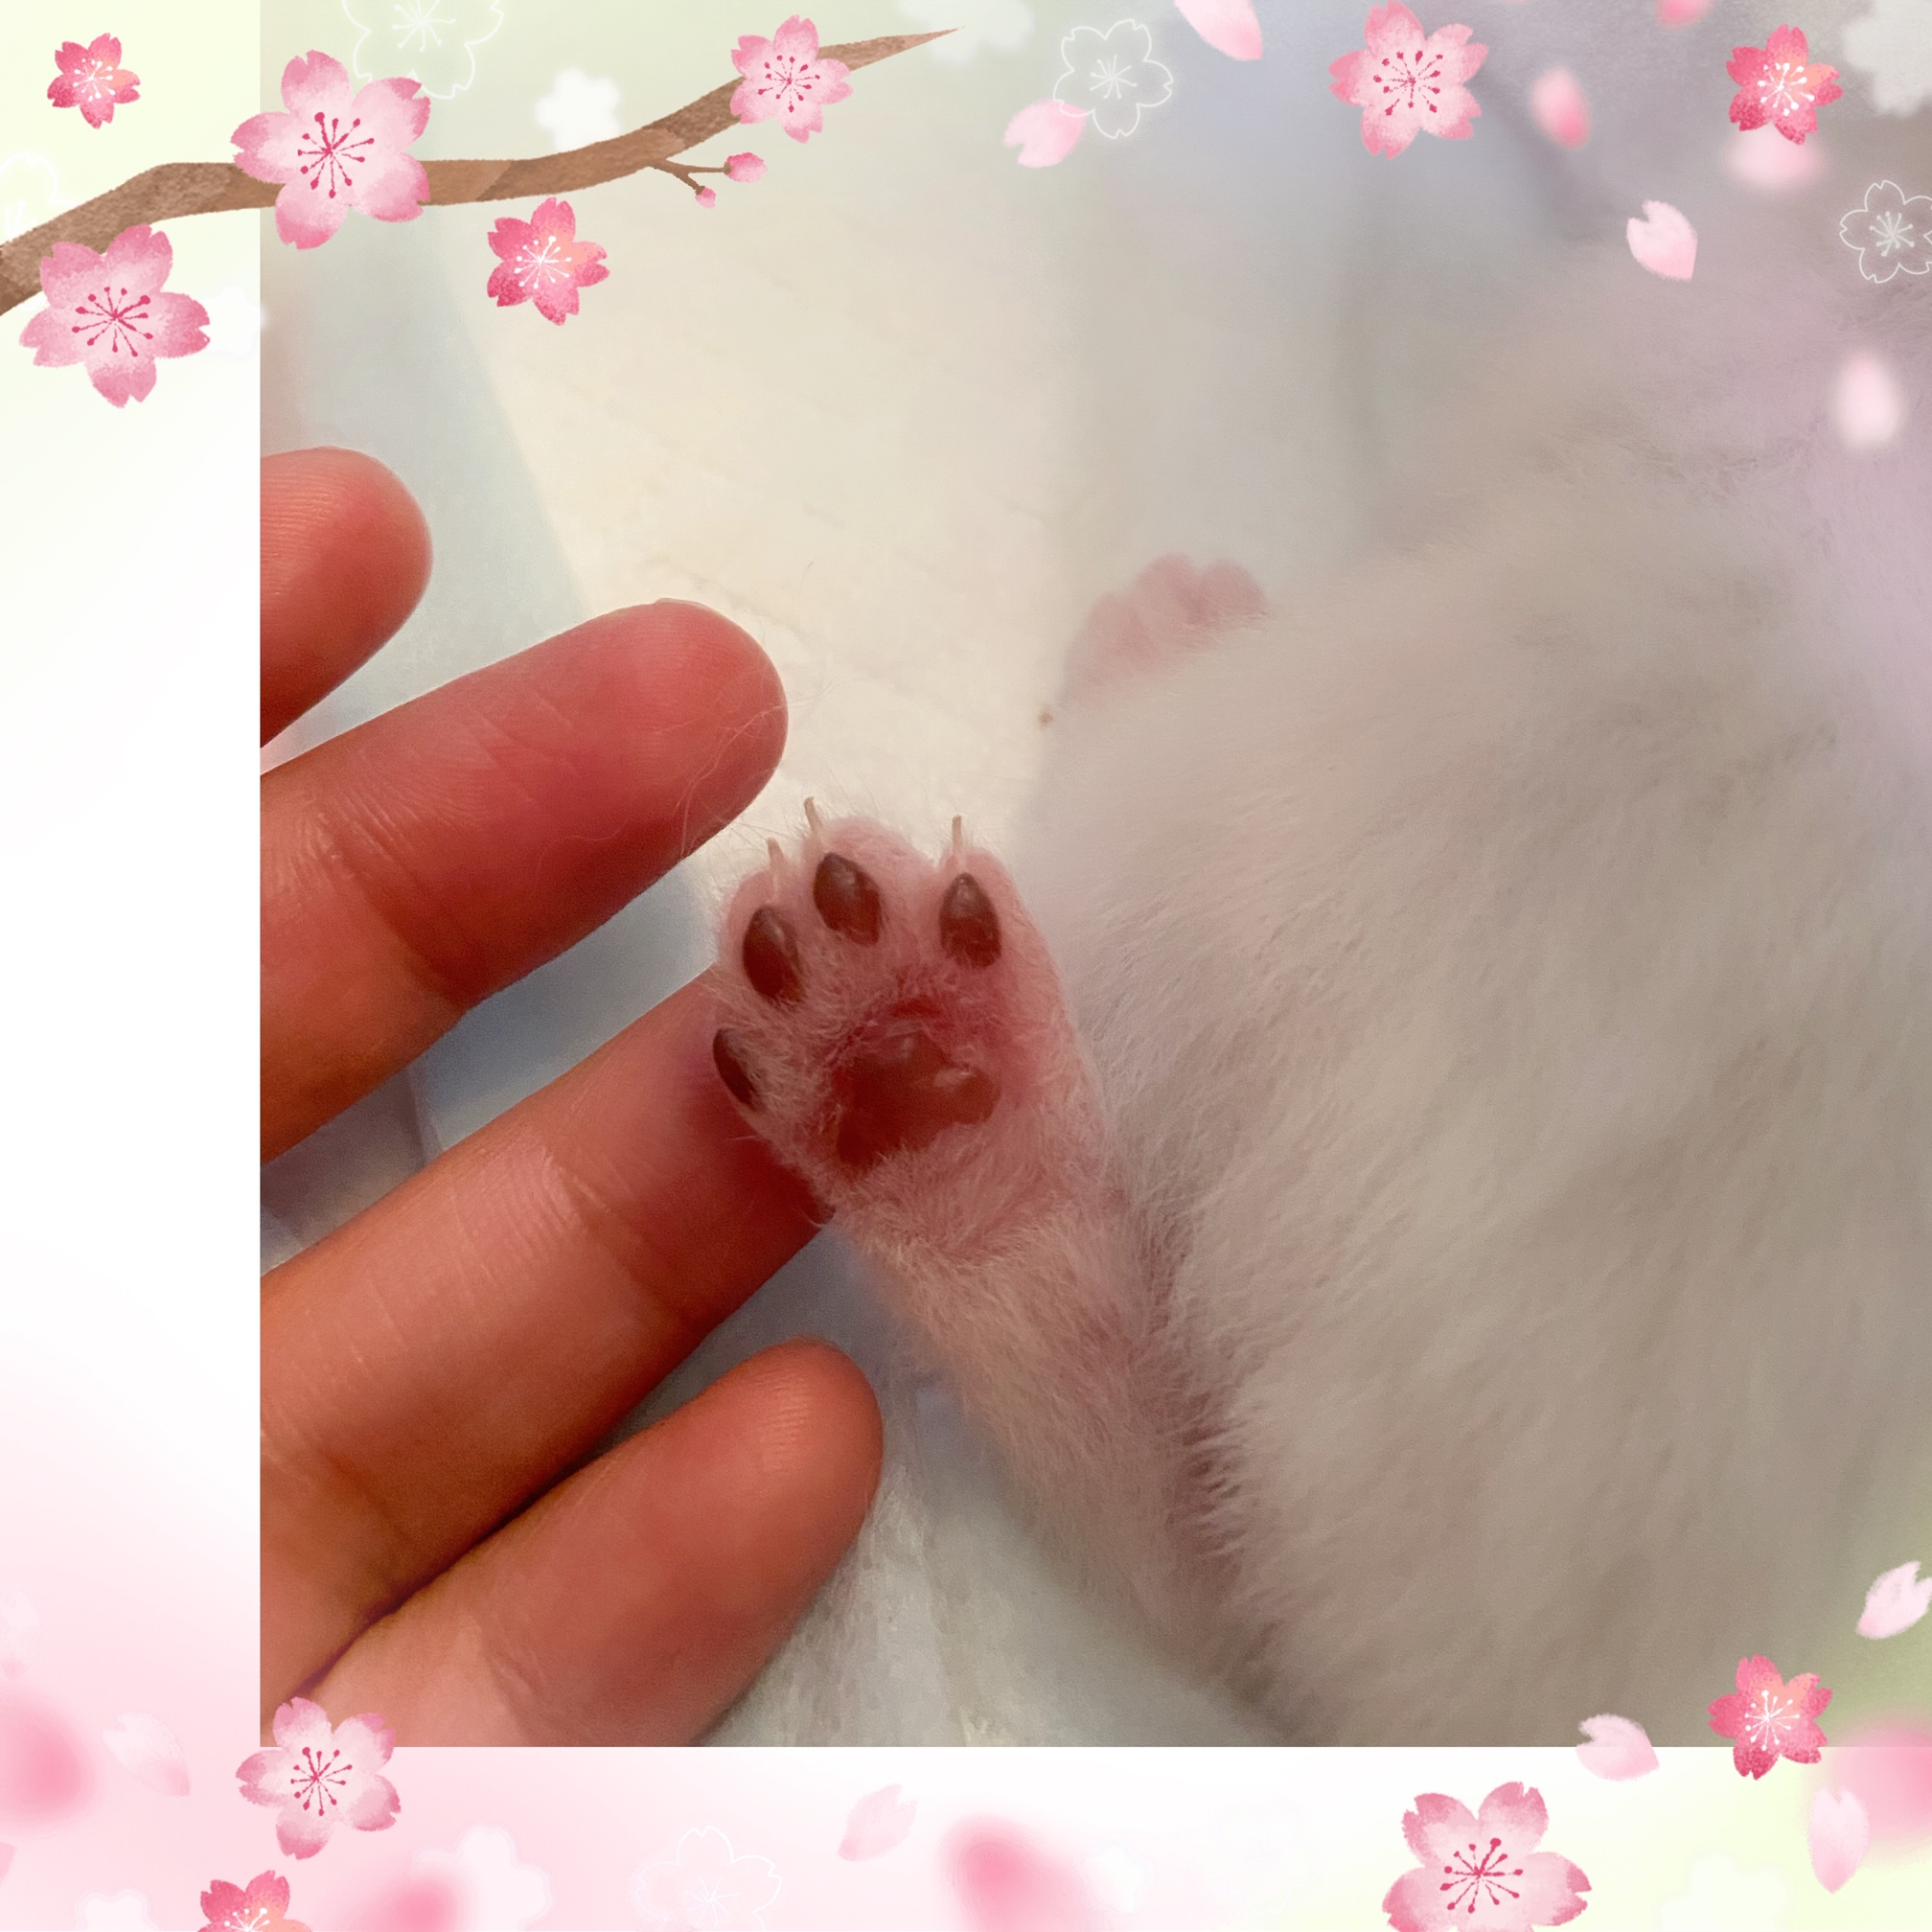 whose paw is this?